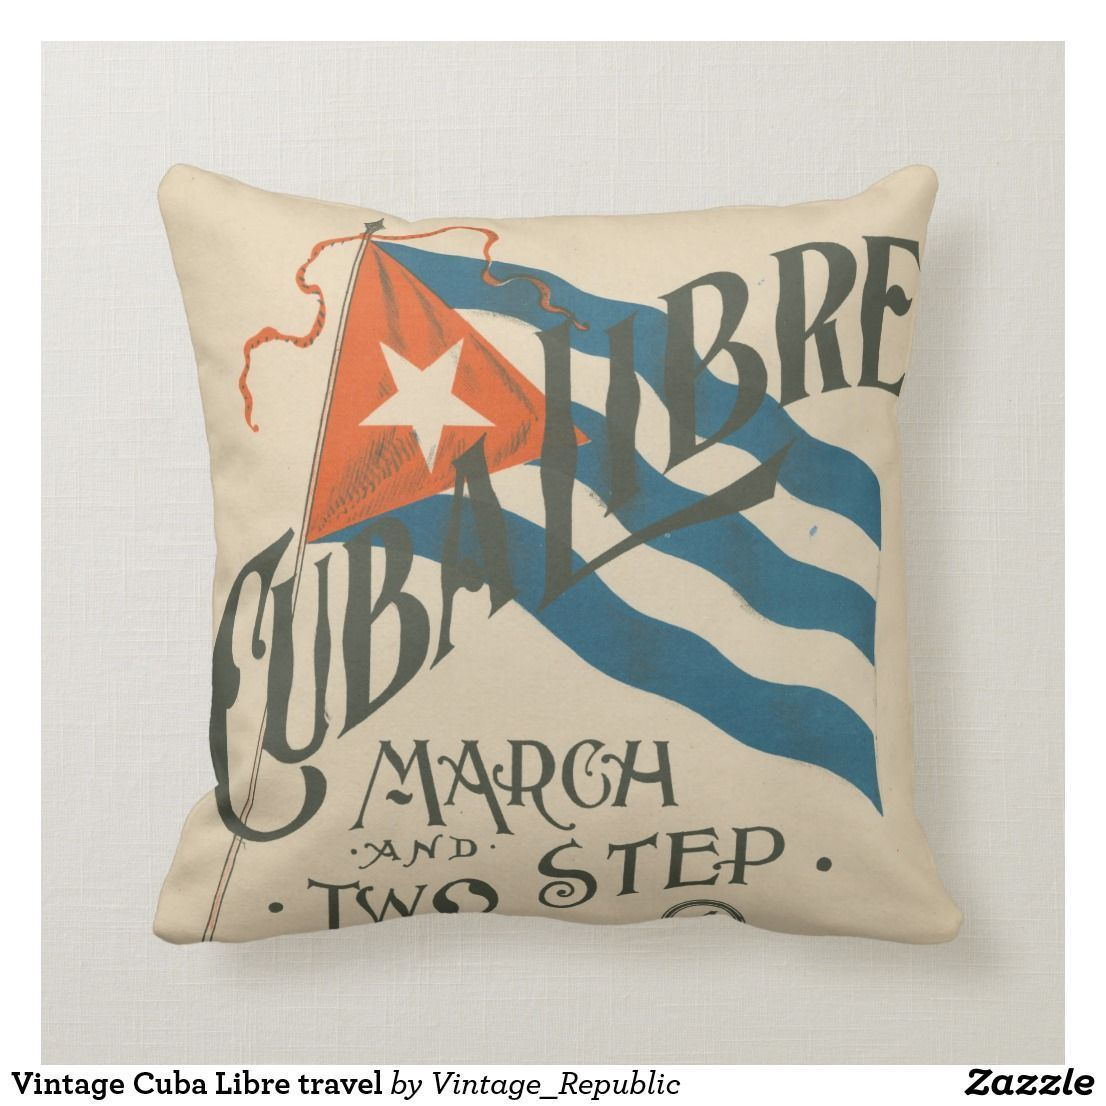 Vintage Cuba Libre travel Throw Pillow | Zazzle.com #cubalibre Vintage Cuba Libre travel Throw Pillow #cubalibre Vintage Cuba Libre travel Throw Pillow | Zazzle.com #cubalibre Vintage Cuba Libre travel Throw Pillow #cubalibre